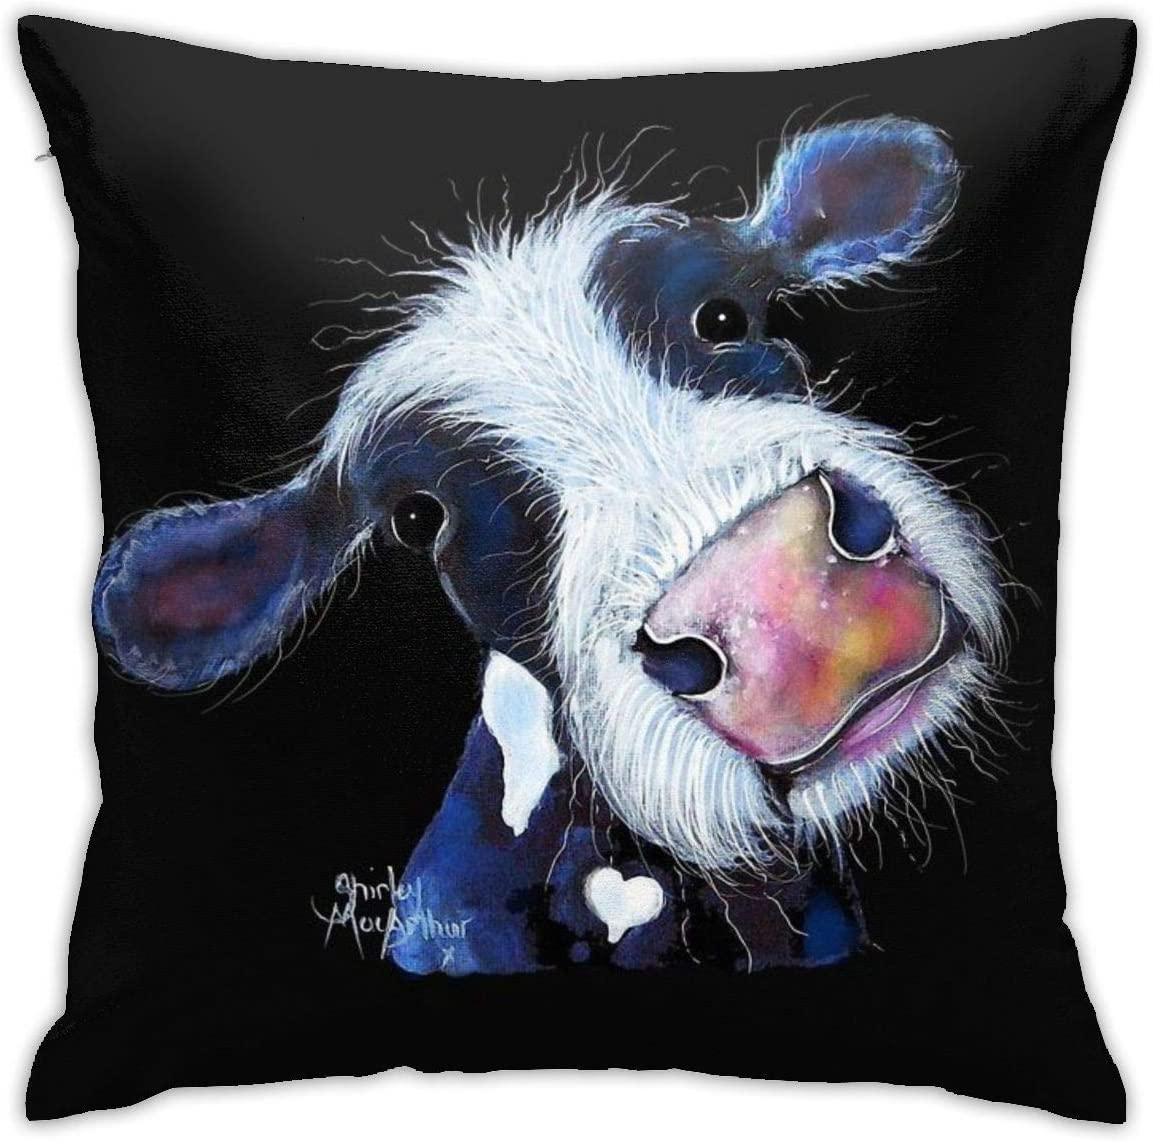 YPPDPP Cow Print ' Nosey Bertha Beetroot ' by Shirley MacArthur Square Pillow Cases Cubierta de cojín Throw Pillow Cover Funda cojine Home Bed Room Interior Decoración